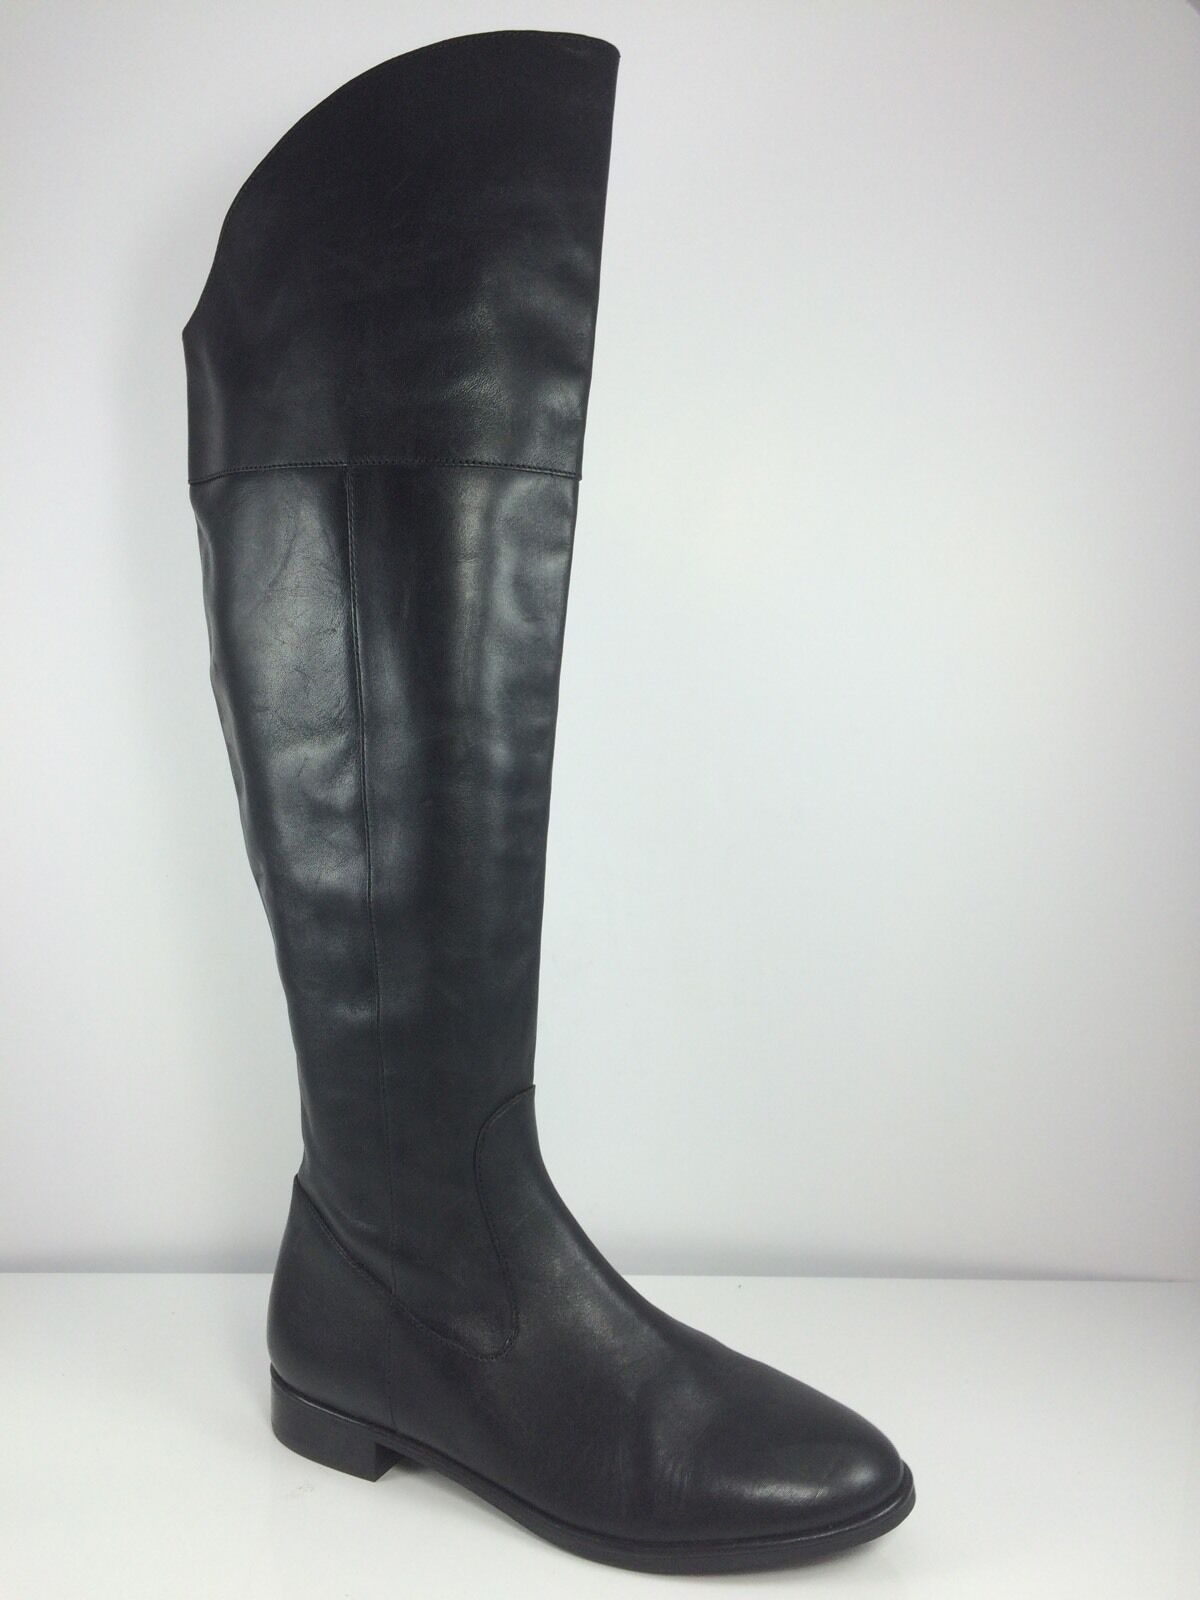 Via Spiga Womens Black Leather Over Knee Boots 8.5 M